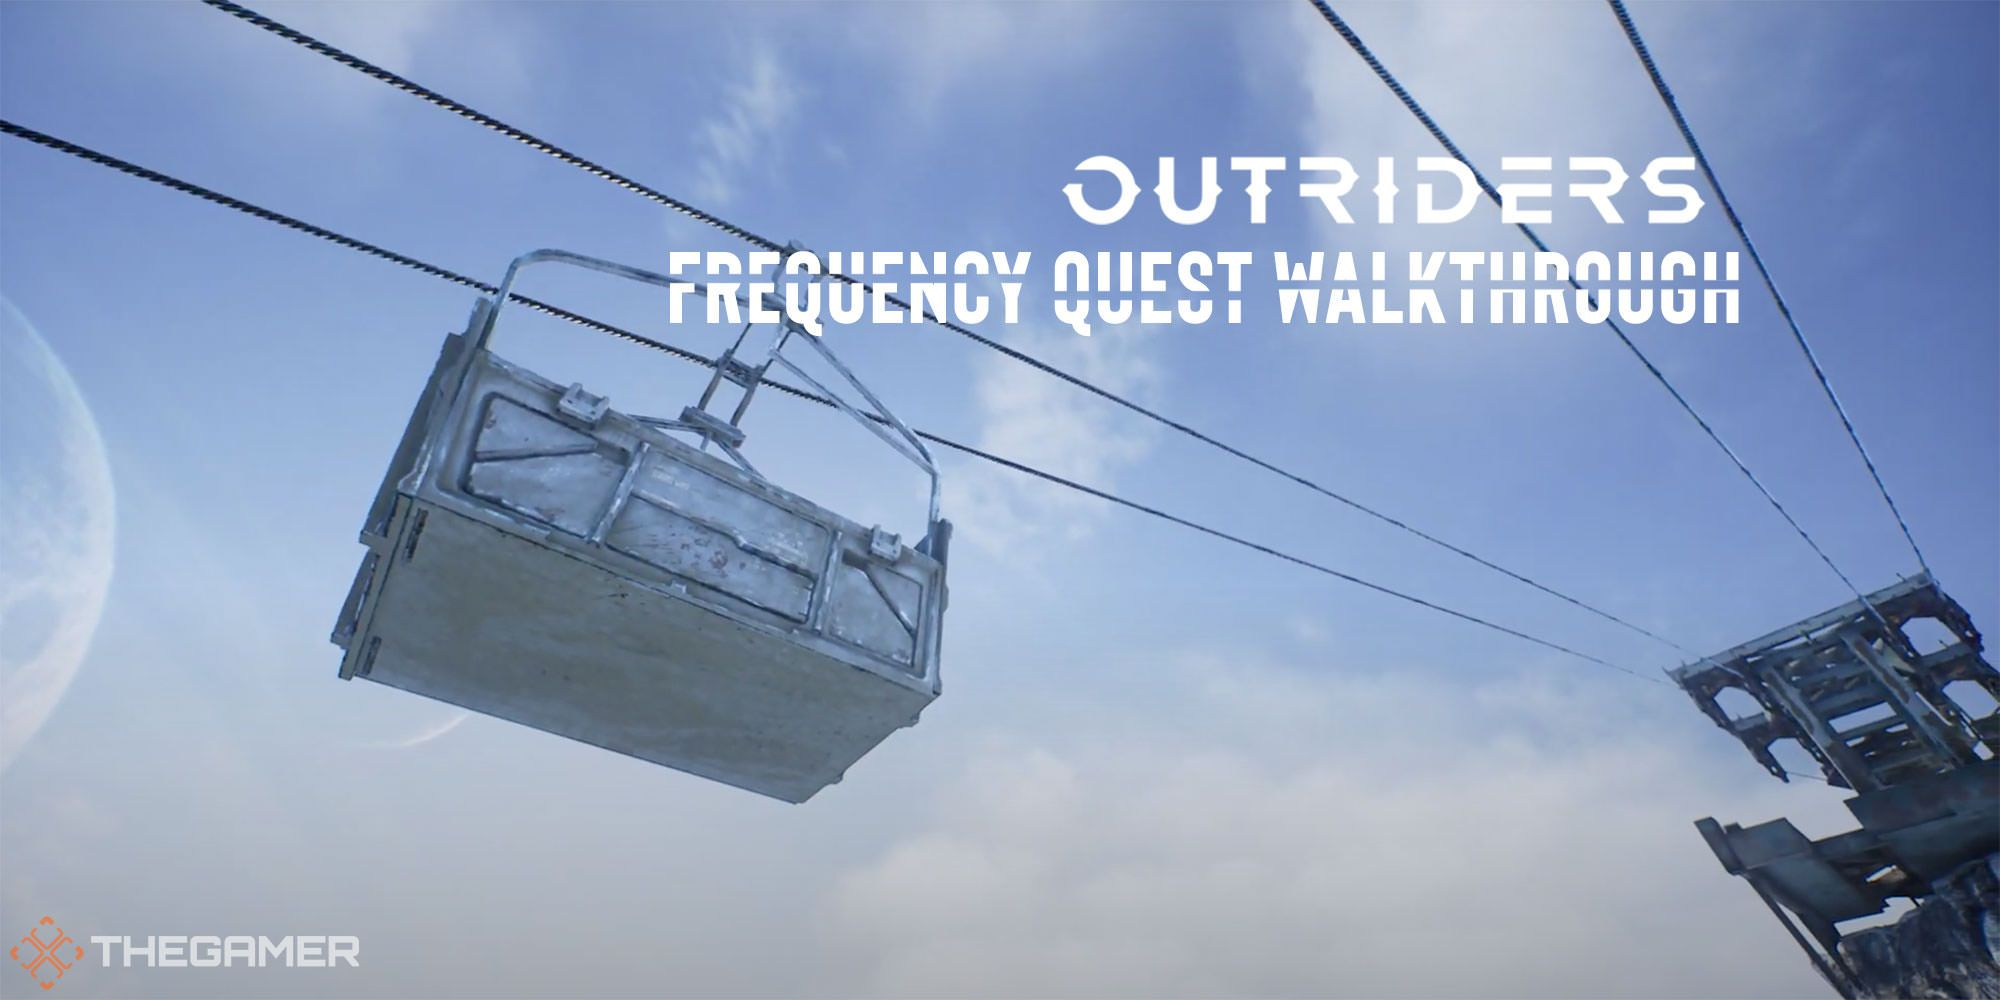 Outriders: Frequency Quest Walkthrough